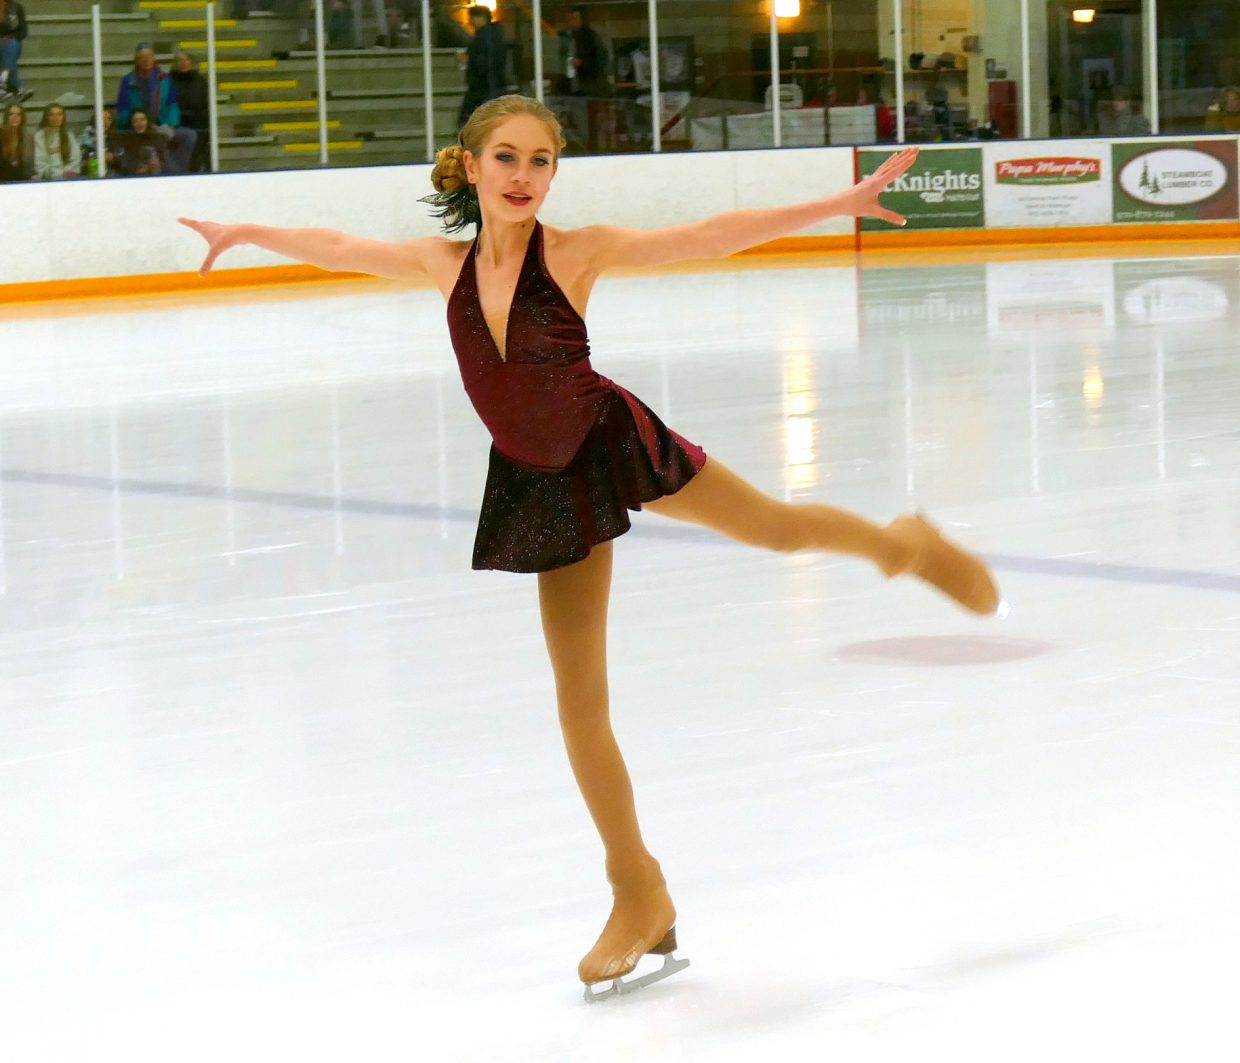 Serena VanEngelenhoven performs during intermission at the Steamboat Wranglers hockey game Friday night. Serena is a member of the Steamboat Skating Club's Competition team and will be performing in the spring production of Charlie and the Chocolate Factory on Ice, March 30-31.